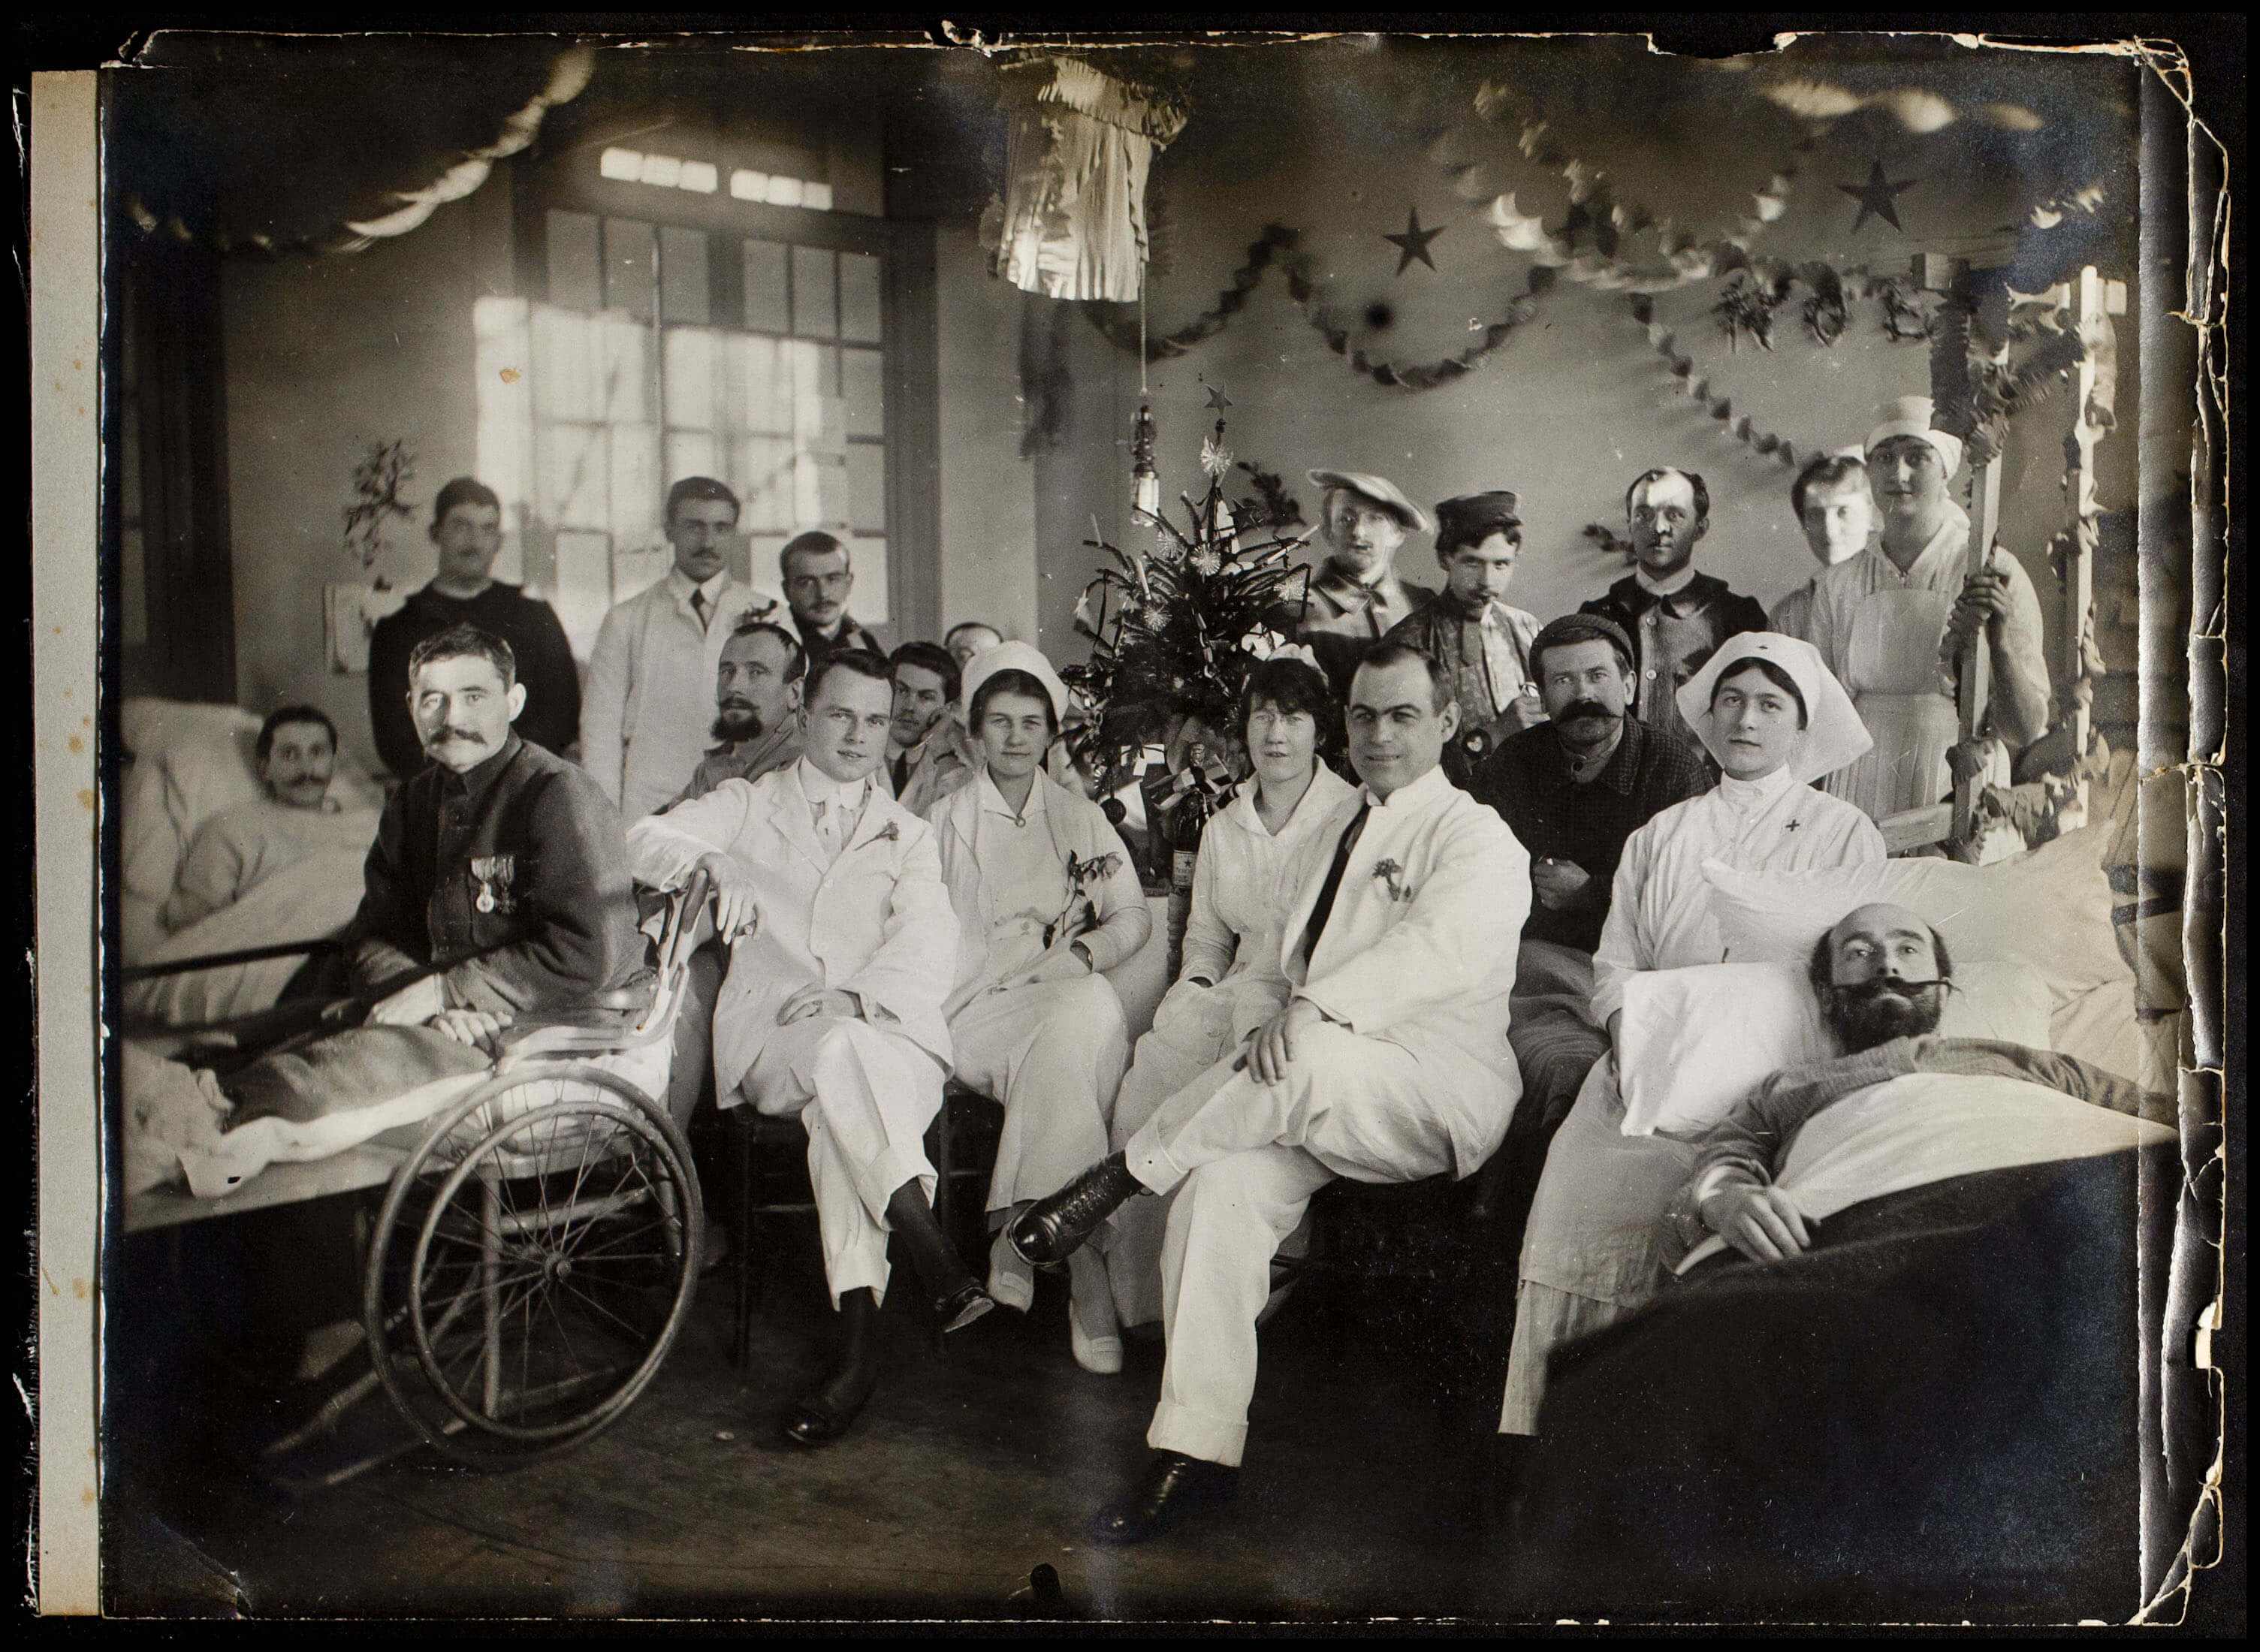 Another Christmas in the Trenches